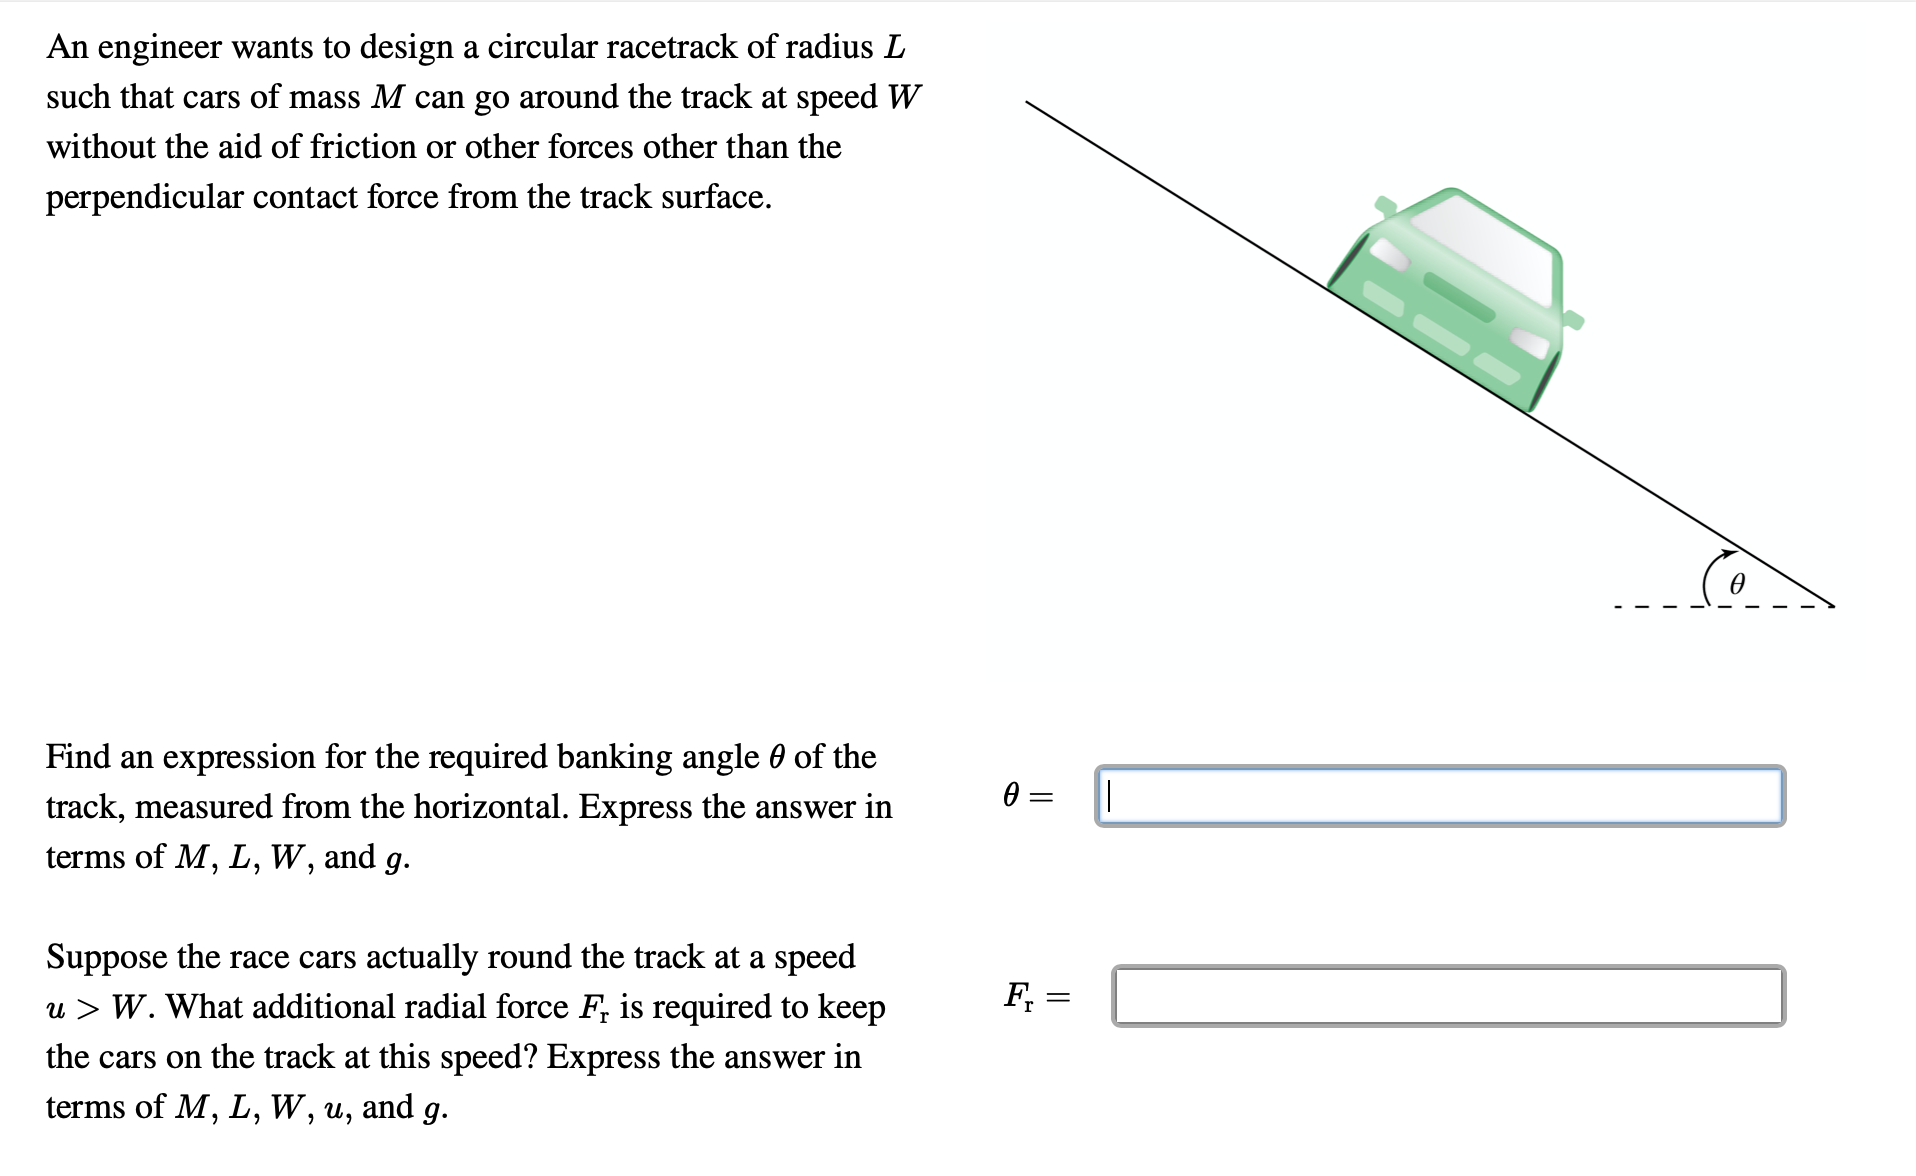 An engineer wants to design a circular racetrack of radius L such that cars of mass M can go around the track at speed W without the aid of friction or other forces other than the perpendicular contact force from the track surface. Find an expression for the required banking angle 0 of the track, measured from the horizontal. Express the answer in terms of M, L, W, and g. Suppose the race cars actually round the track at a speed u > W. What additional radial force F, is required to keep F, = the cars on the track at this speed? Express the answer in terms of M, L, W, u, and g. ||